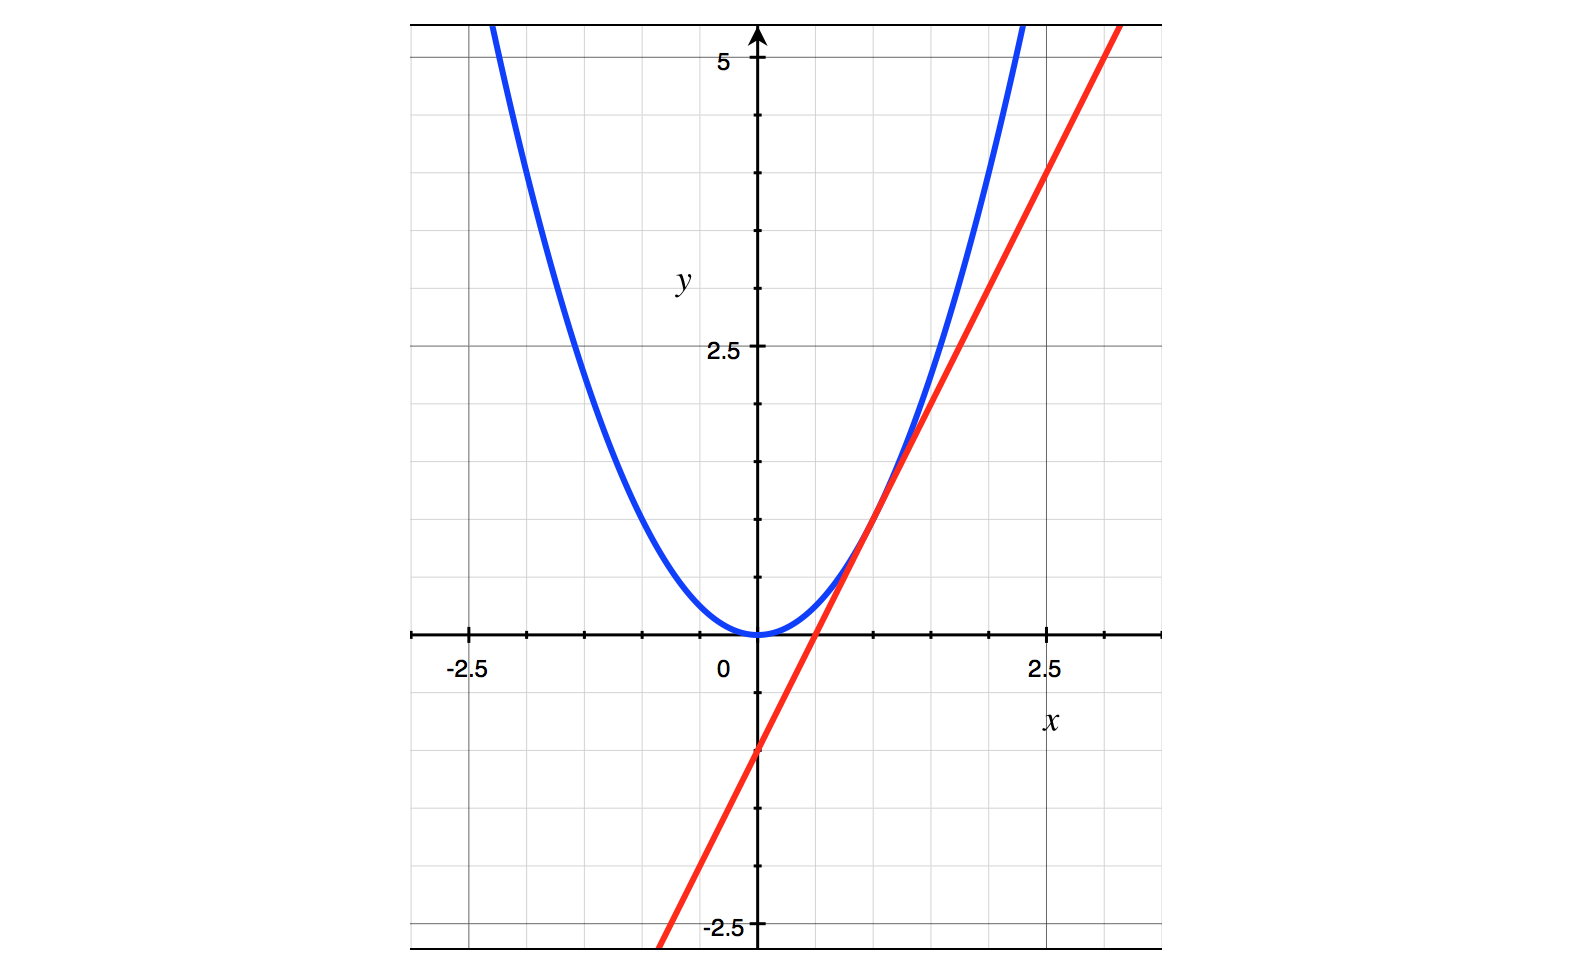 components_nonlinear-1.png